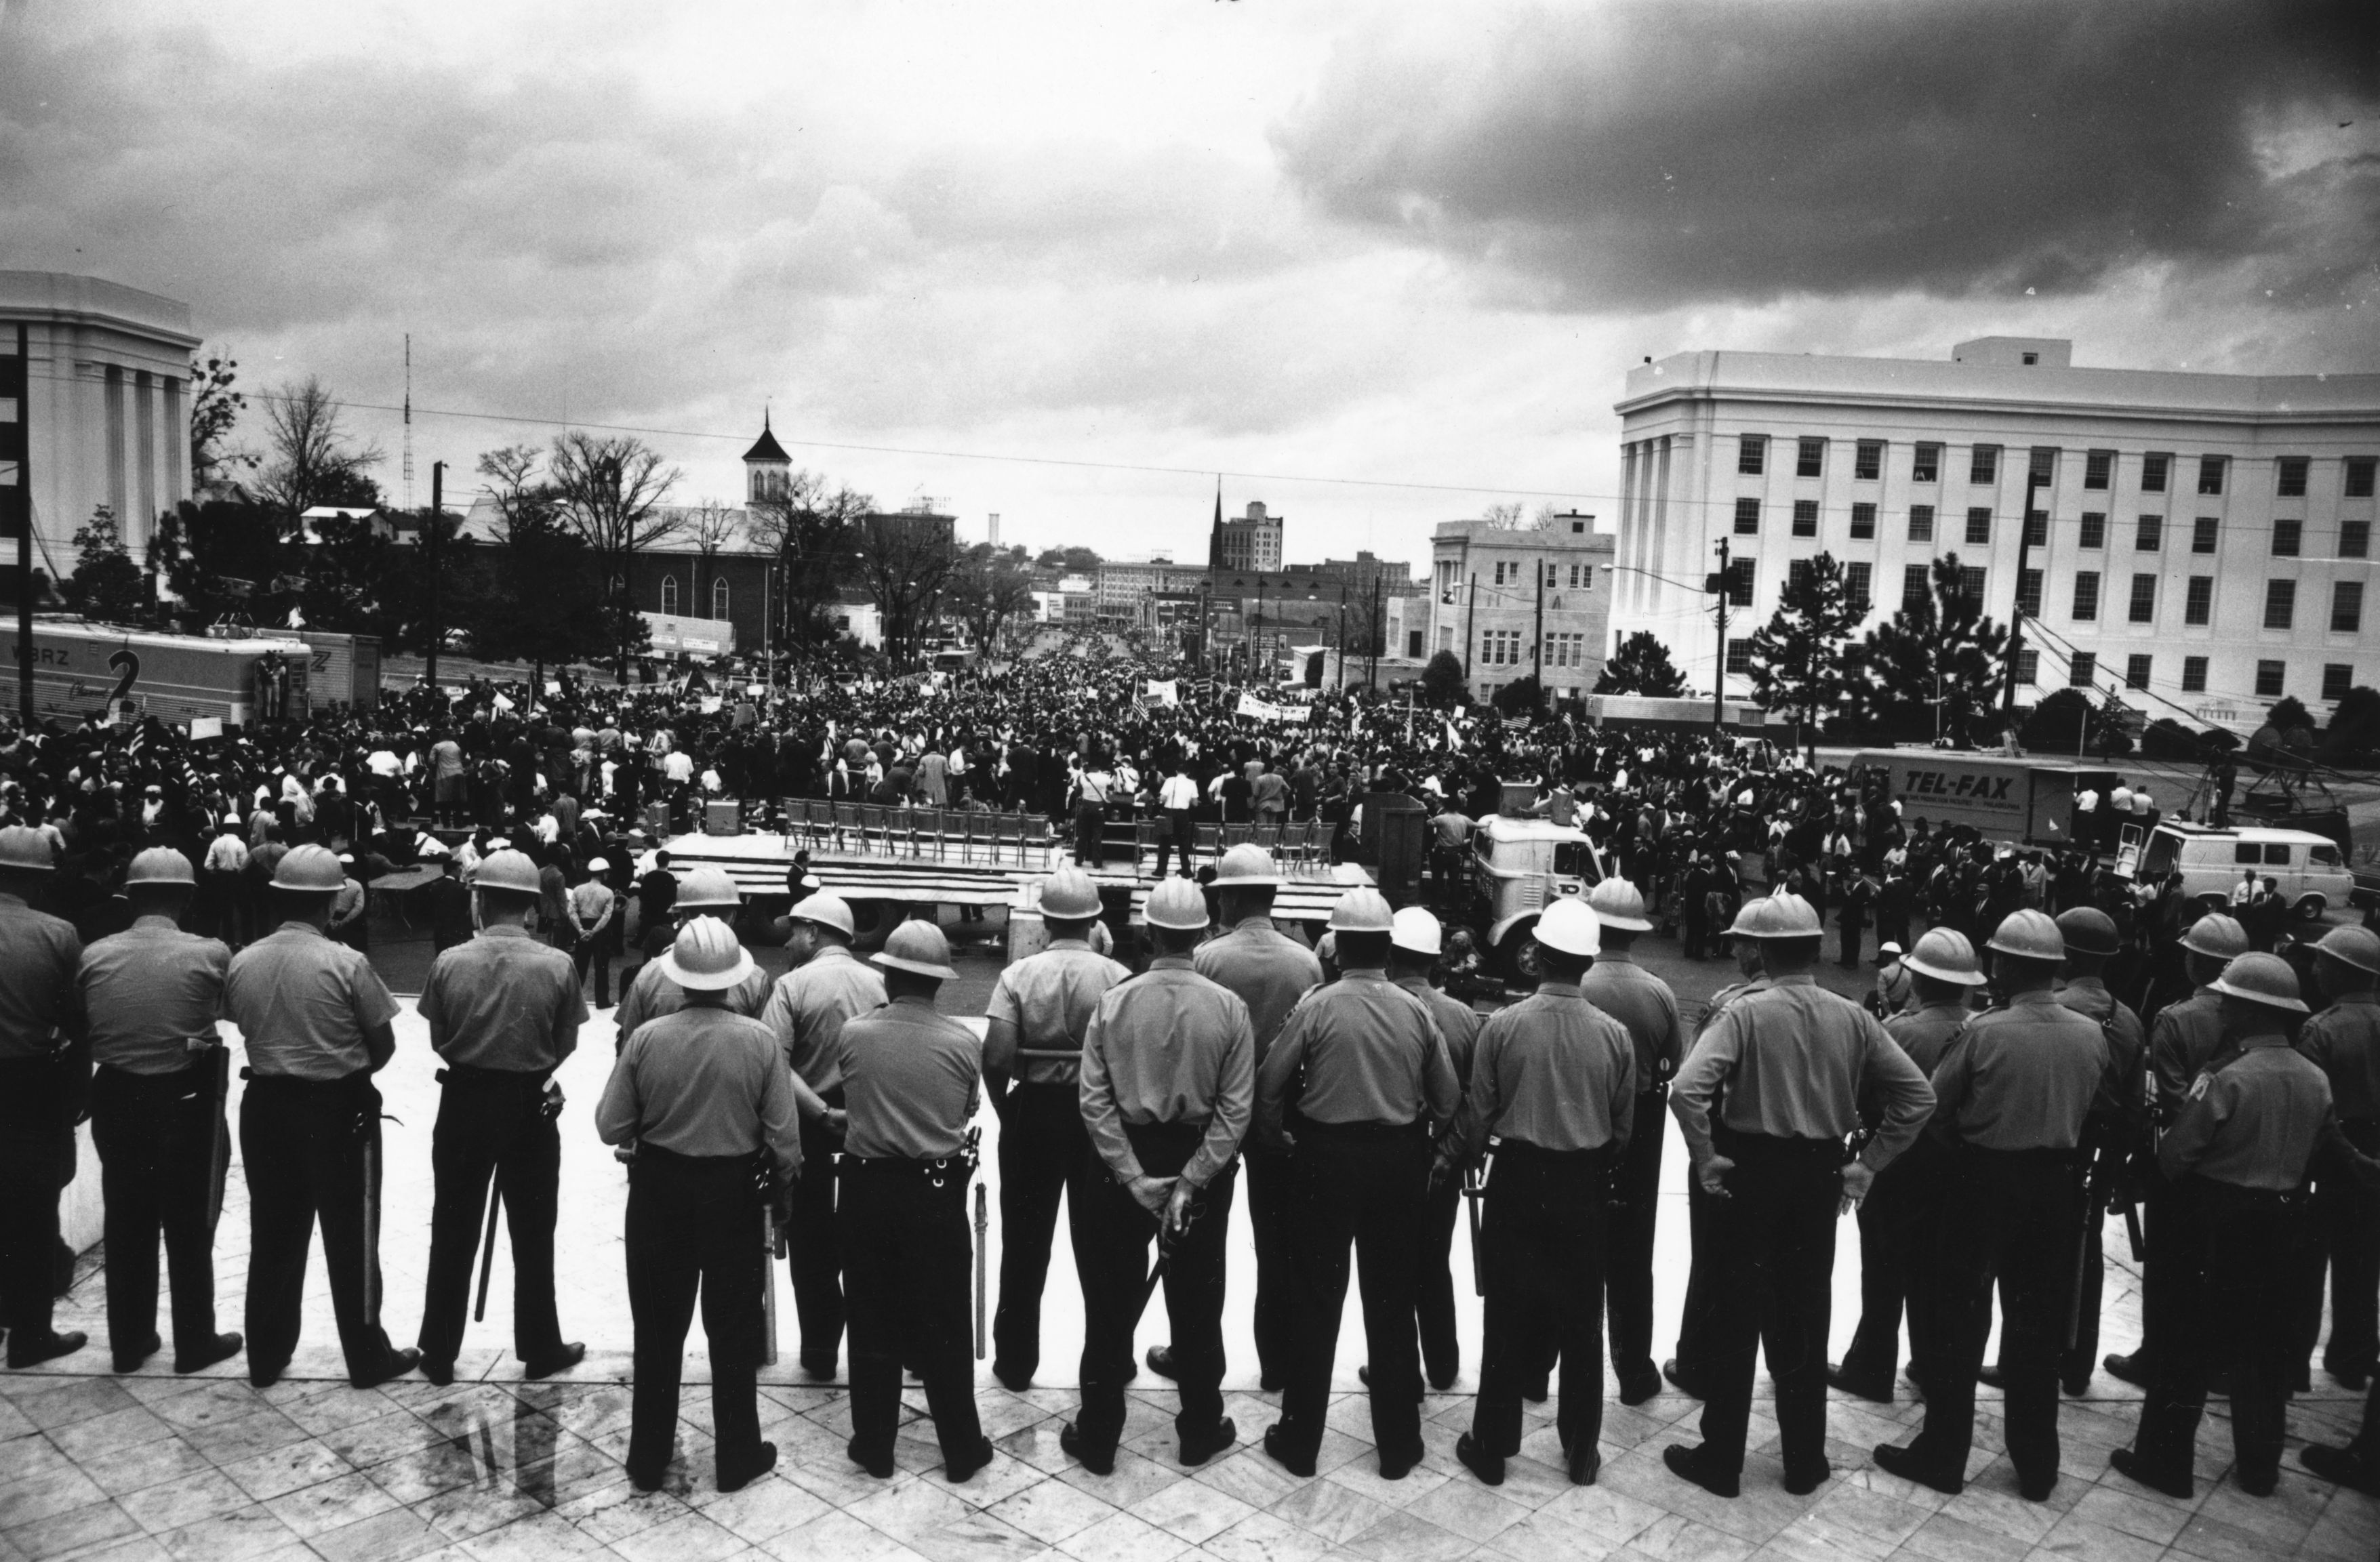 March 1965: A line of policemen on duty during a black voting rights march in Montgomery, Alabama. Dr Martin Luther King led the march from Selma, Alabama, to the state capital in Montgomery. (Photo by William Lovelace/Express/Getty Images)